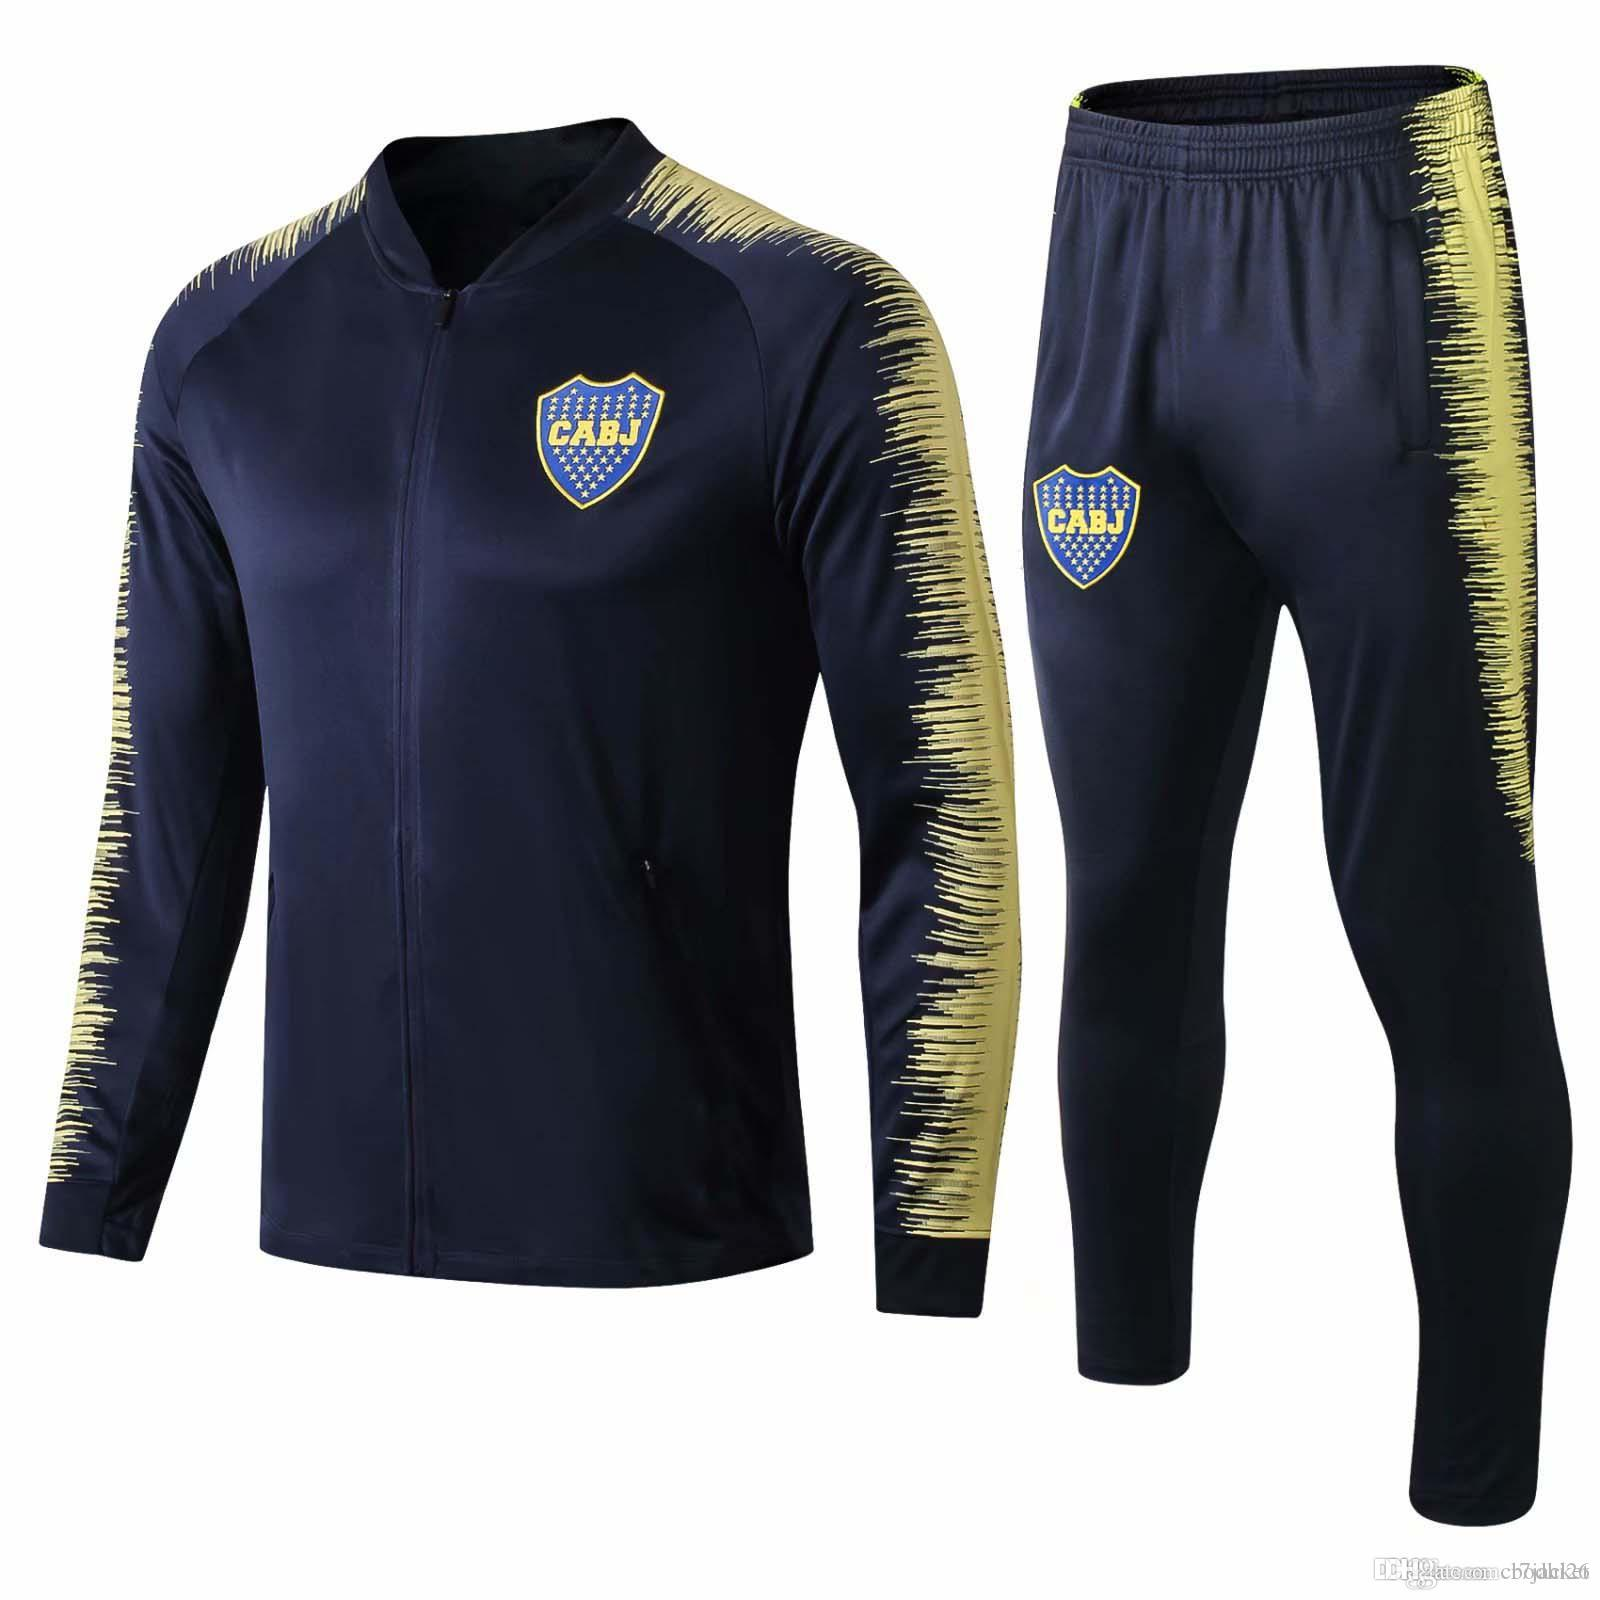 En gros plus récent Boca Juniors veste Benedetto à capuche 2018 2019 CABJ survêtements maillot de football maillot de football Naindez Pavon survêtement Mas maillot de football